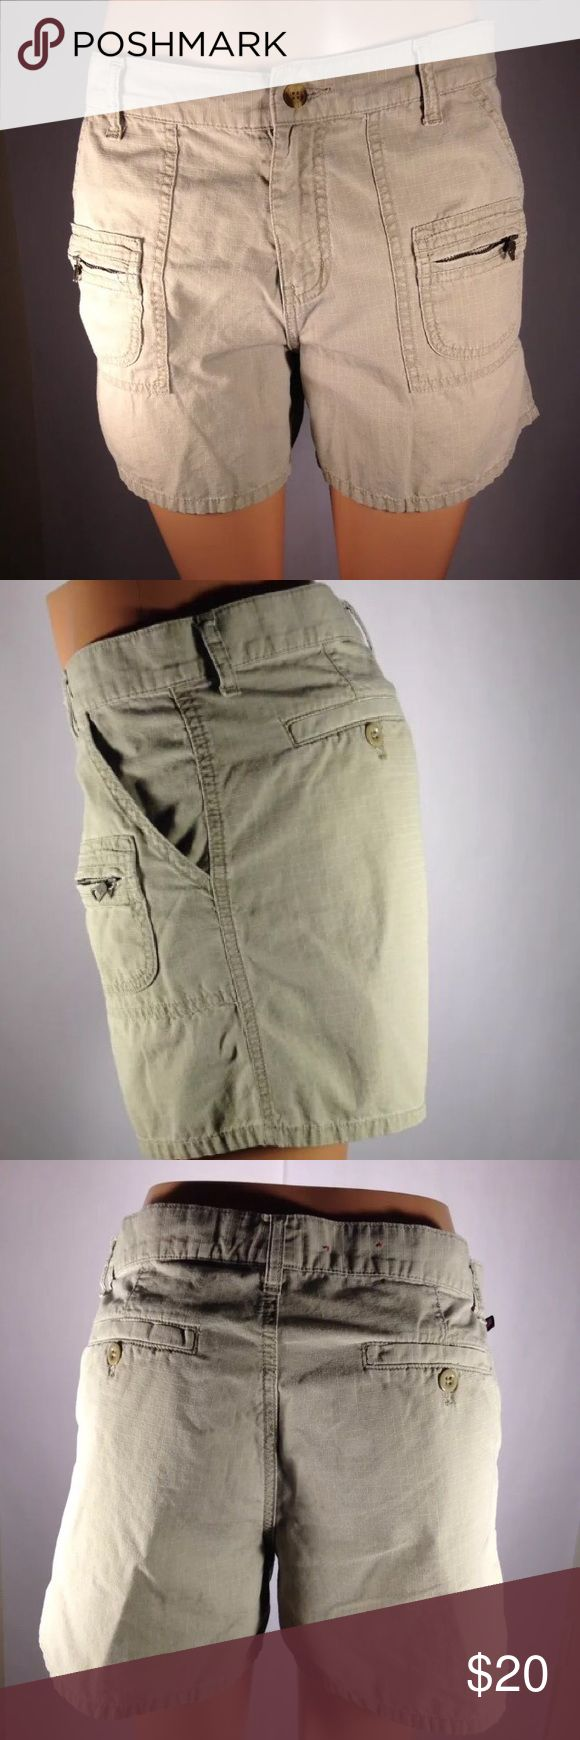 """Polo Jean Co Women Shorts Size 10 Beige Polo Jeans Company RL Women Shorts Size 10 Beige Casual  100% Cotton  Waist 17.5""""  Rise 11""""  Hips 20""""  Inseam 6""""  Check out my store for other great finds Polo Jeans Company Shorts"""